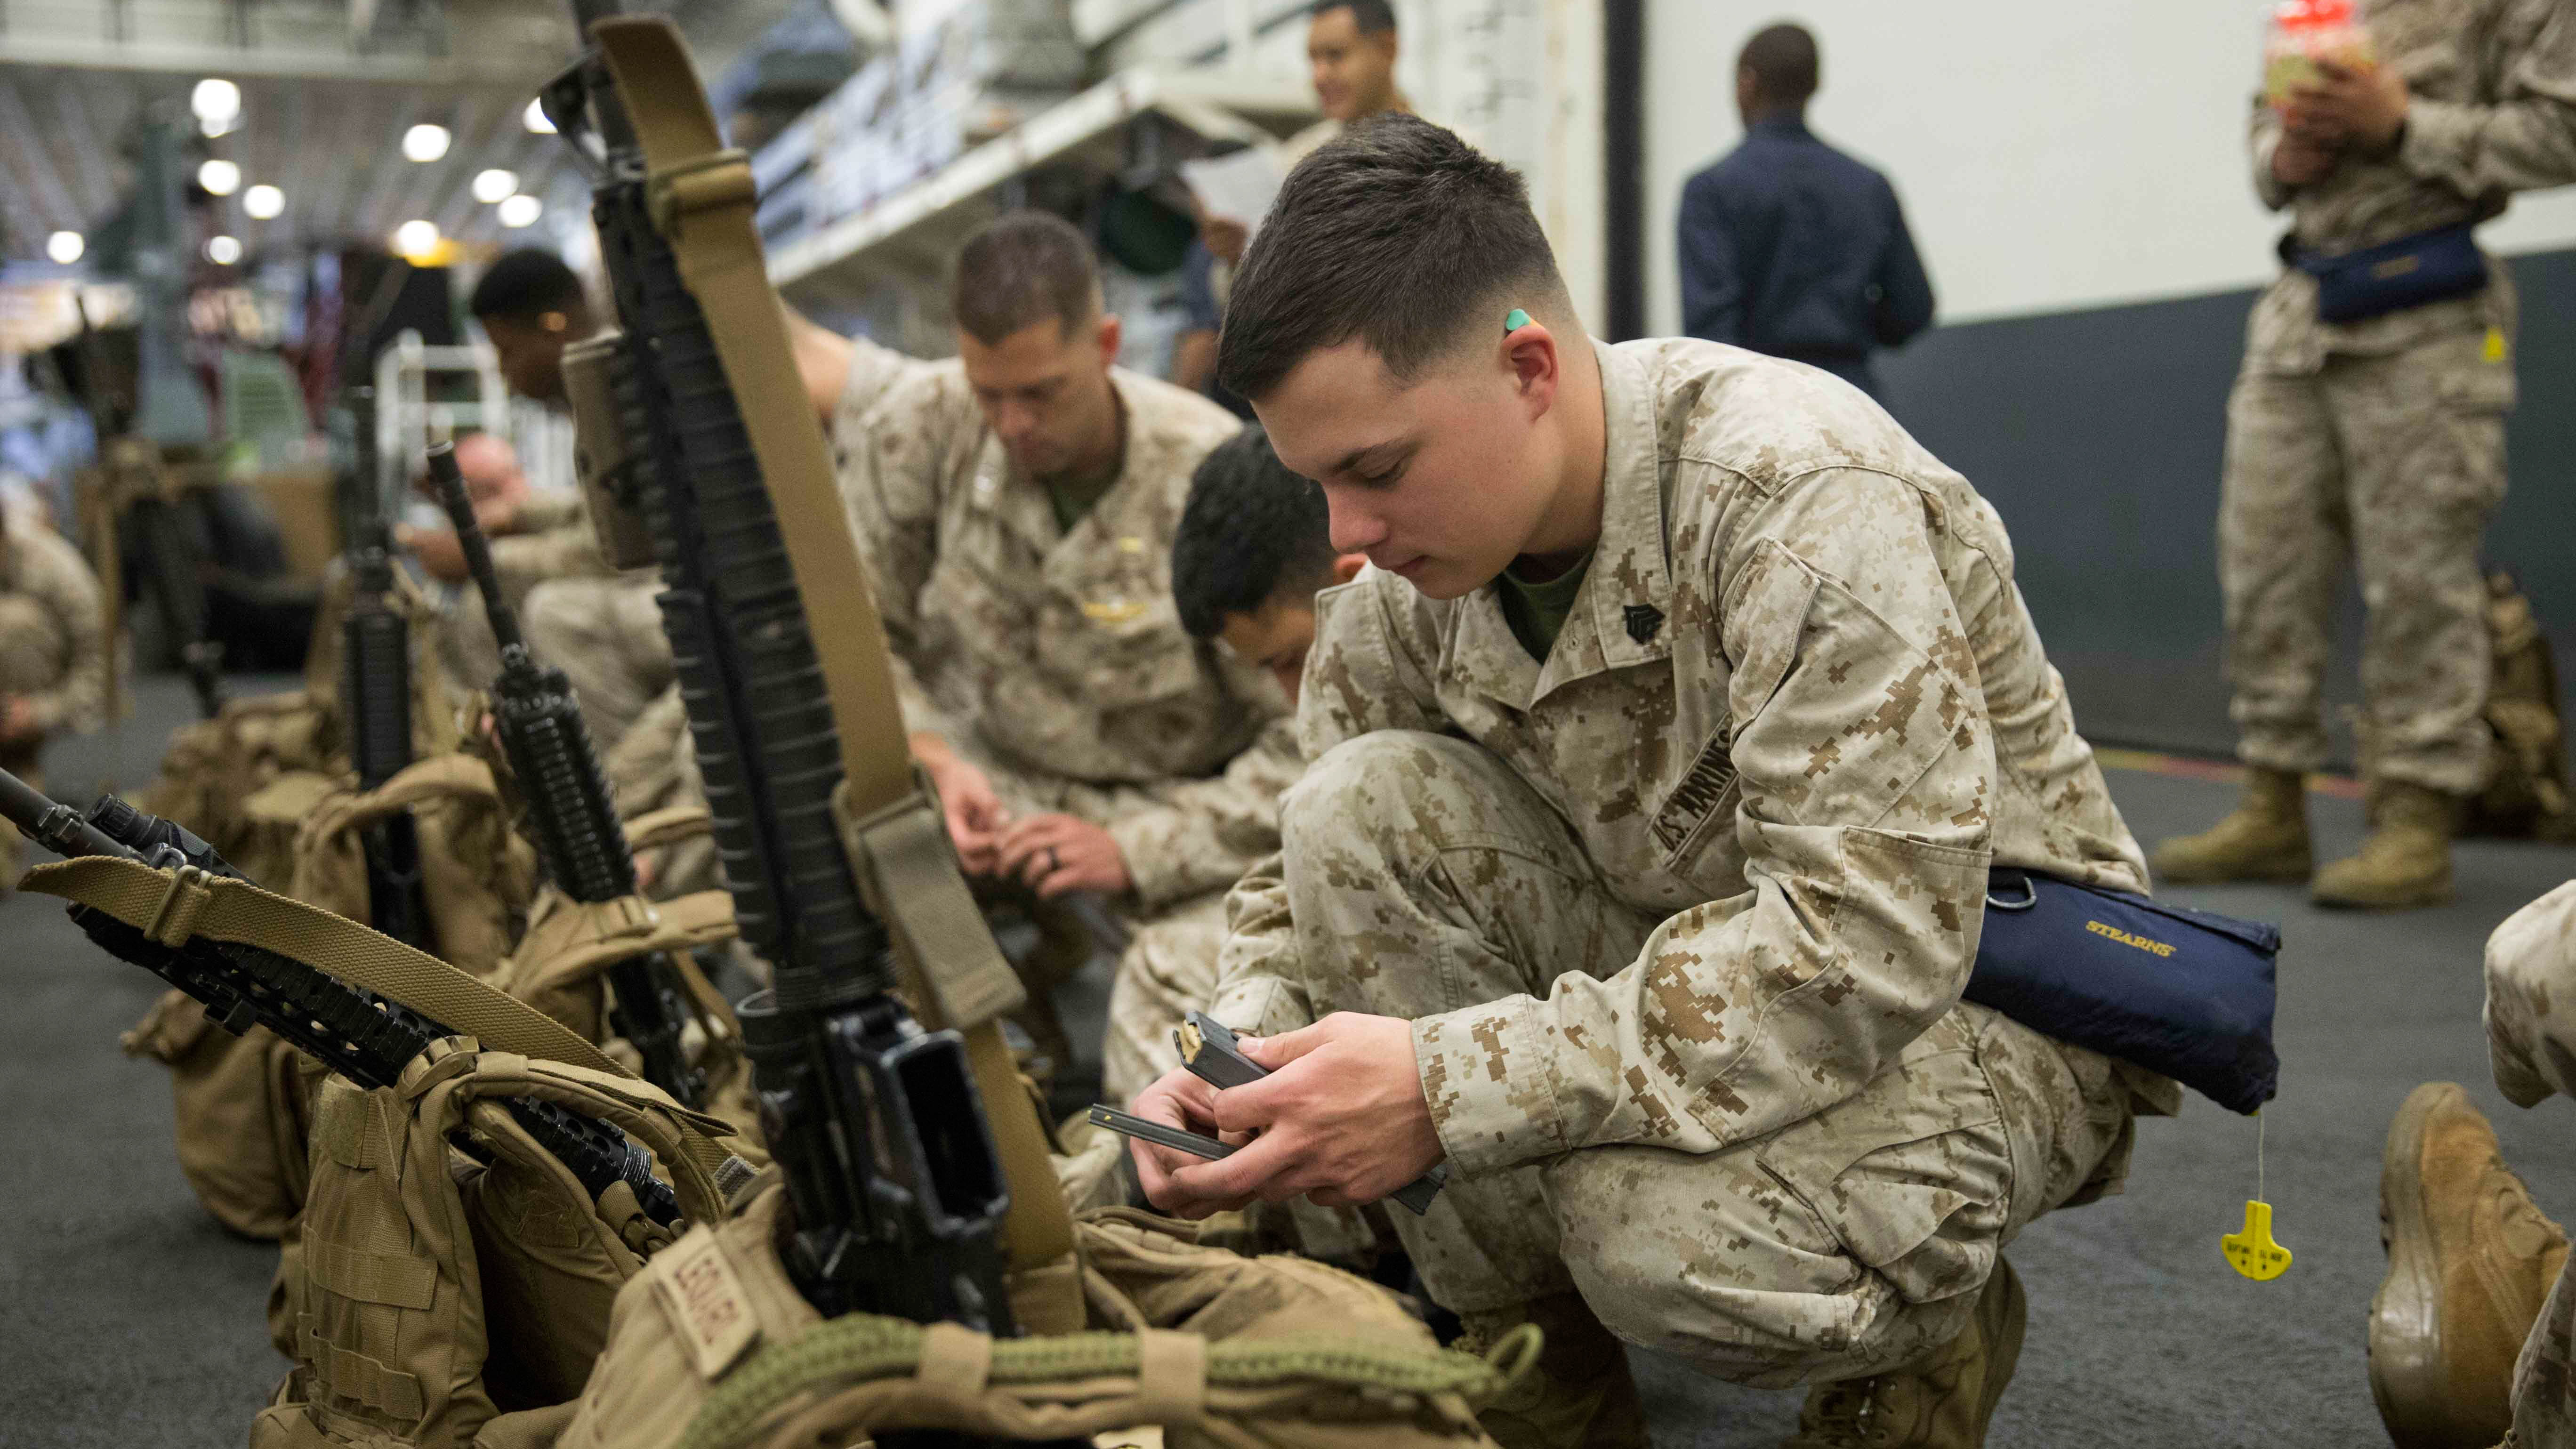 mos occ field 30 supply administration amp operations